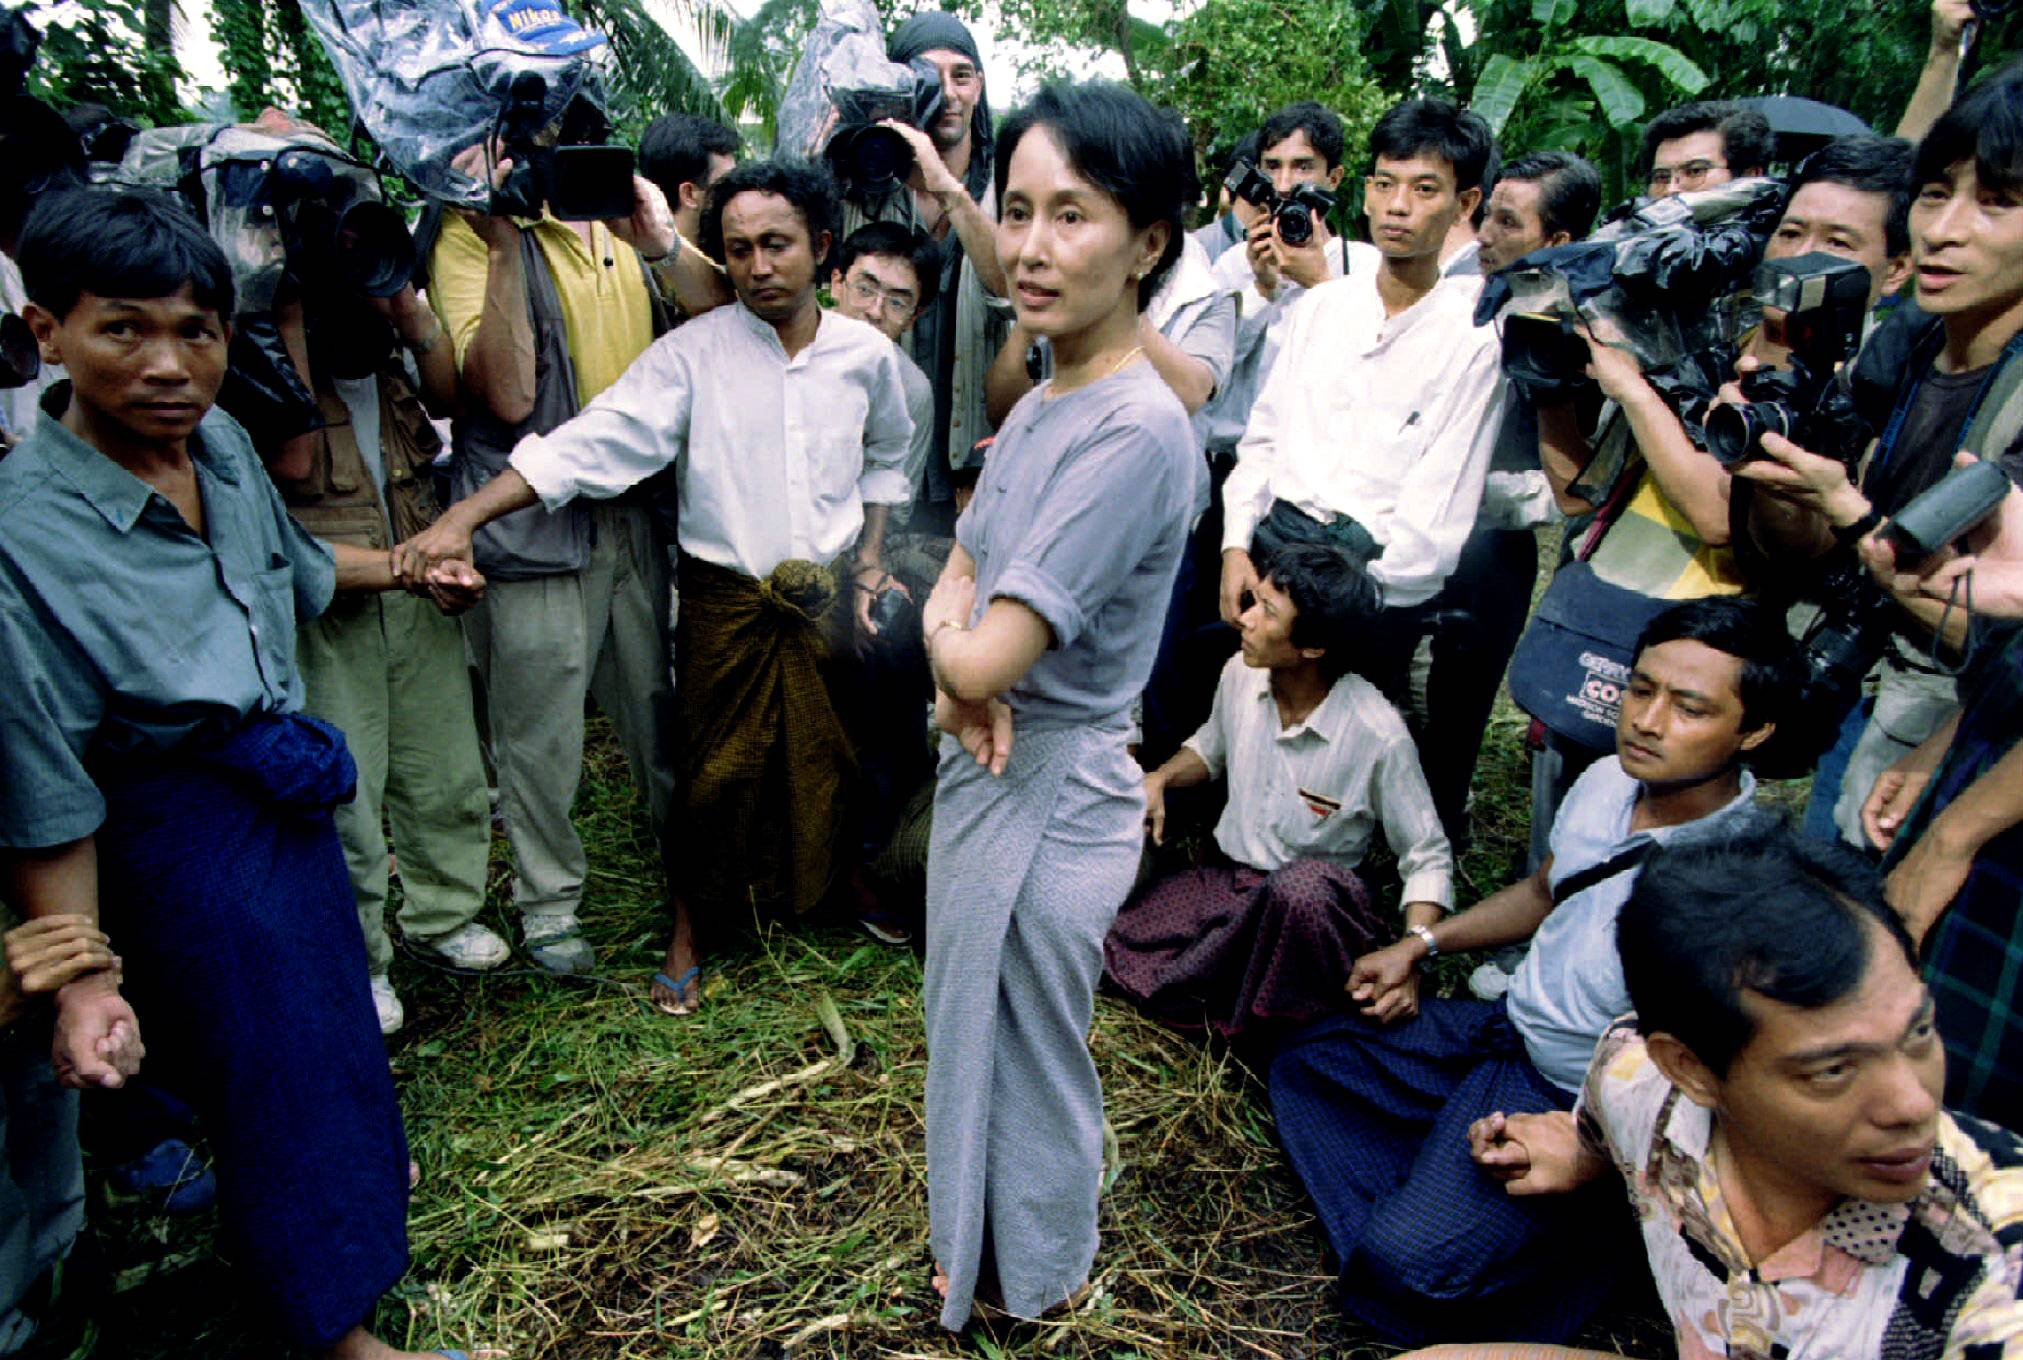 Aung San Suu Kyi is surrounded by security guards and journalists as she walks out of her house in Rangoon in July 1995. | REUTERS